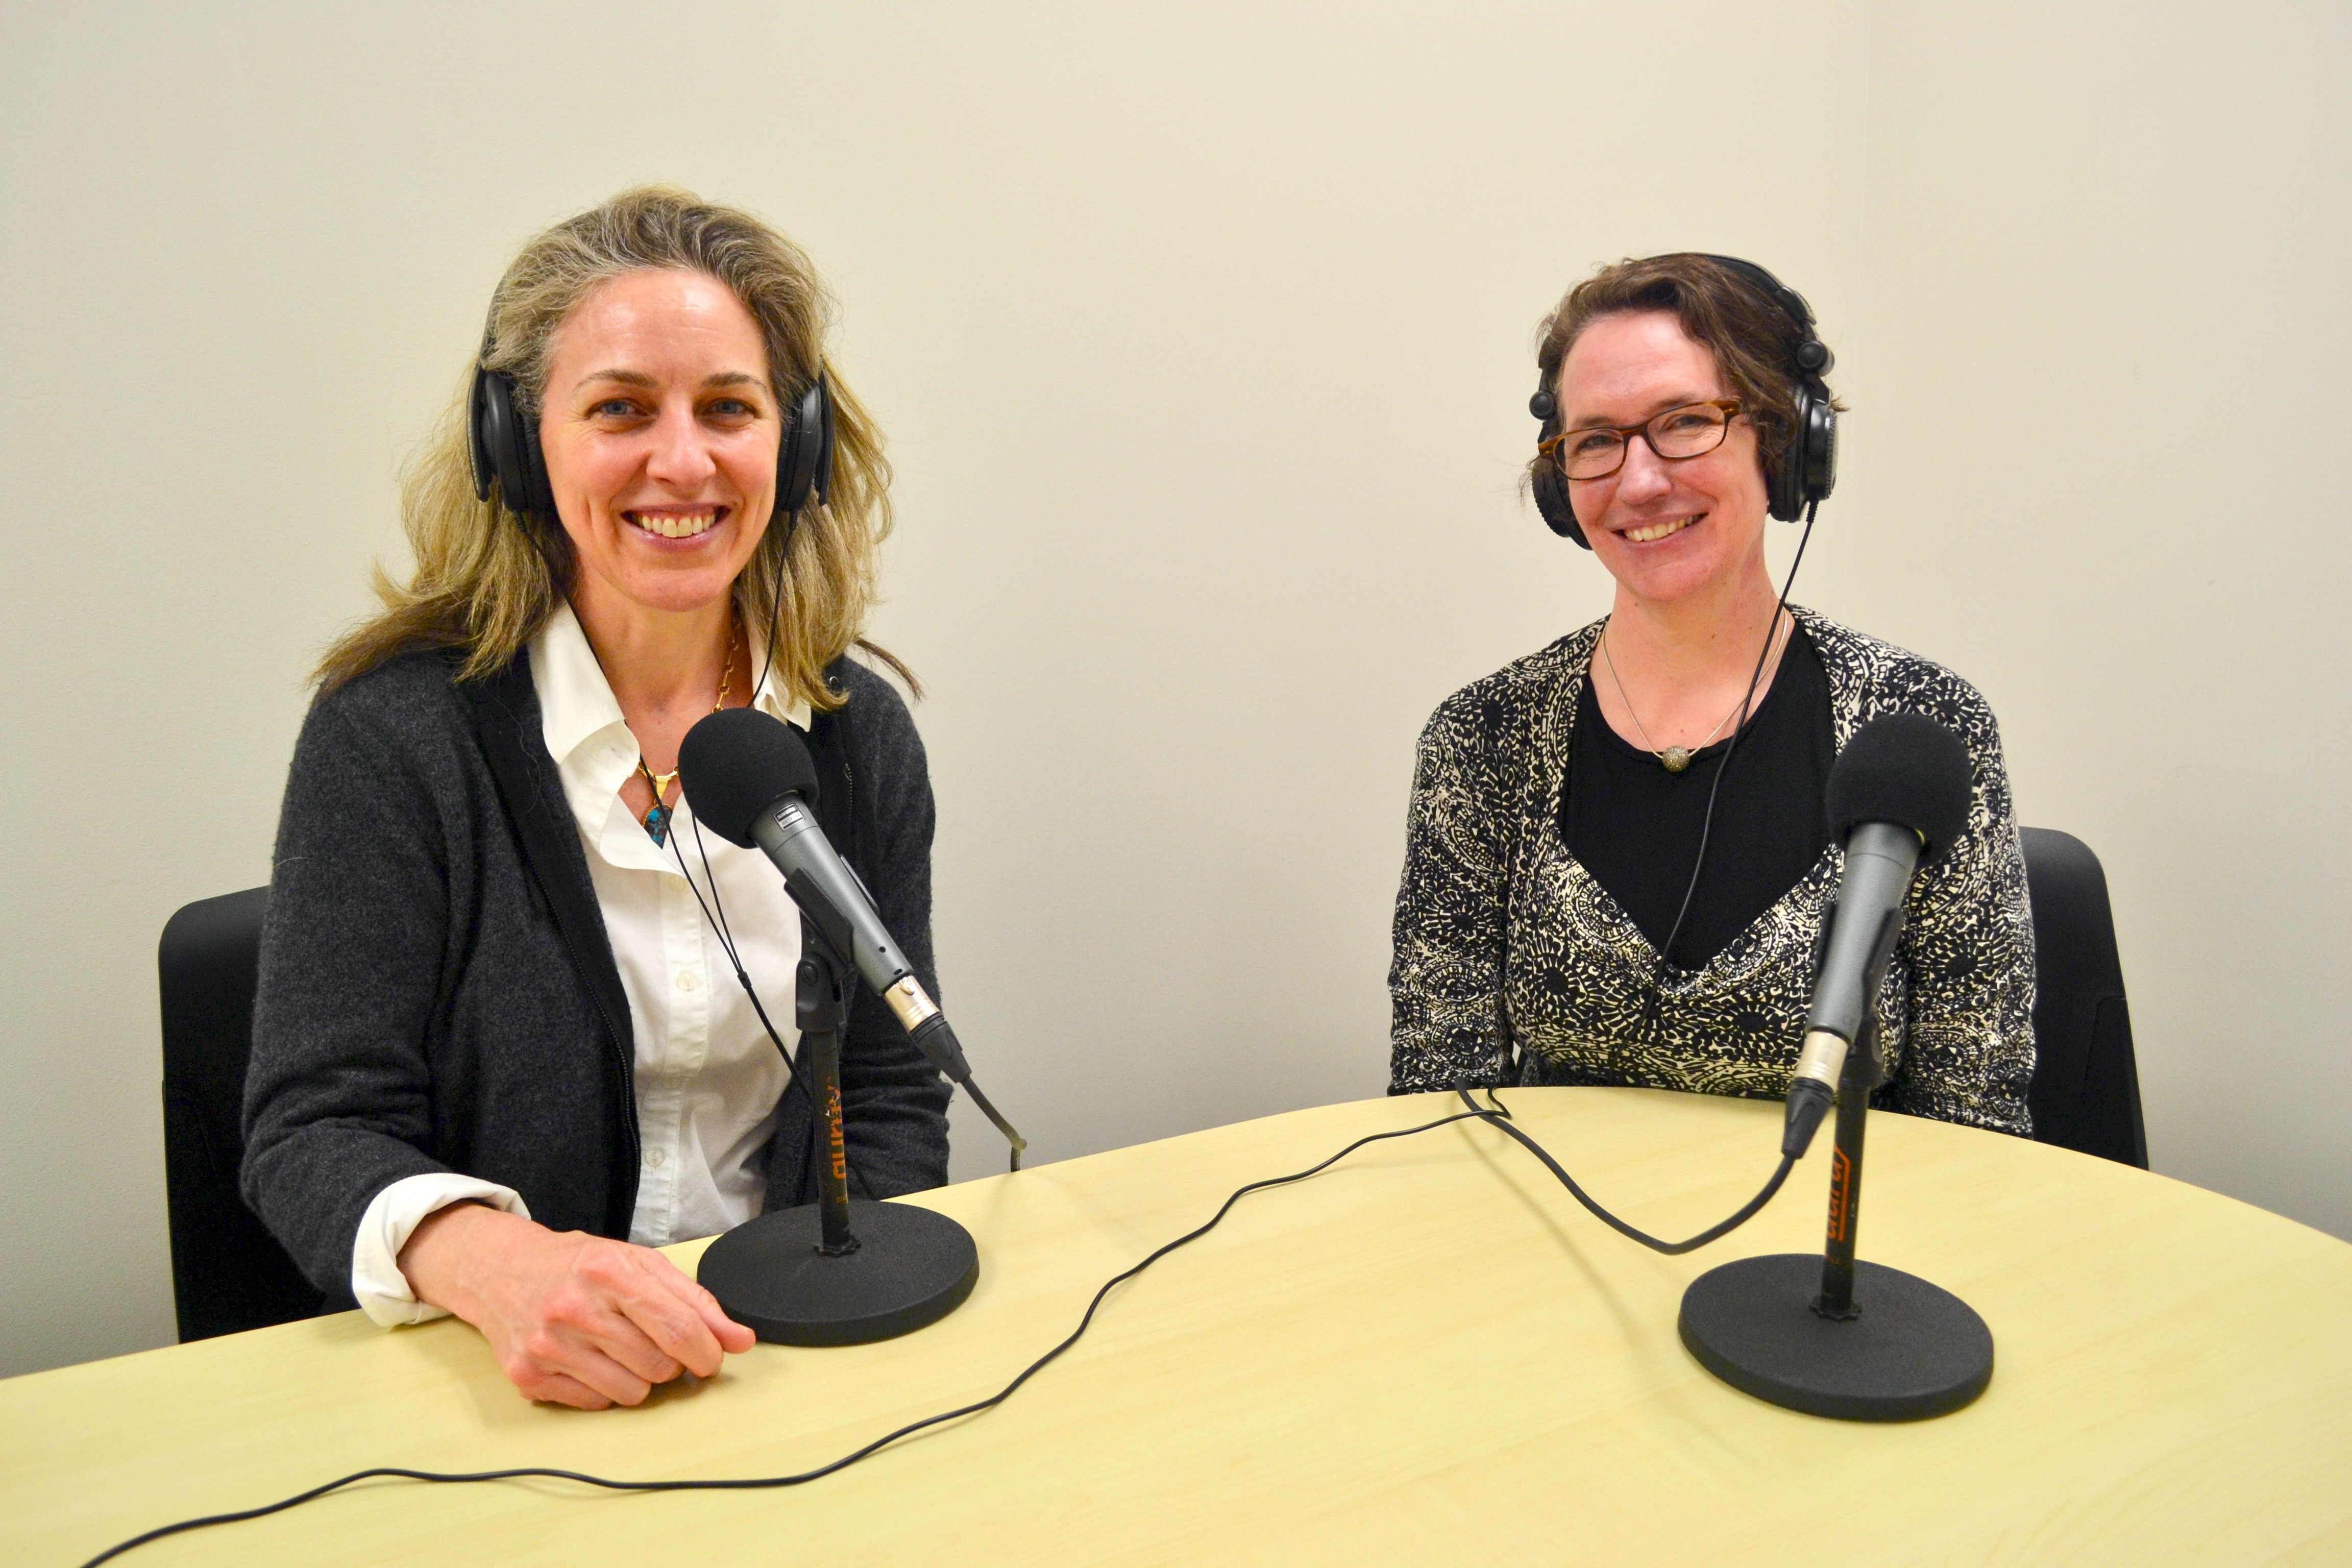 Susannah Fox and Cambia Health Solutions HealthChangers Podcast innovation in health care